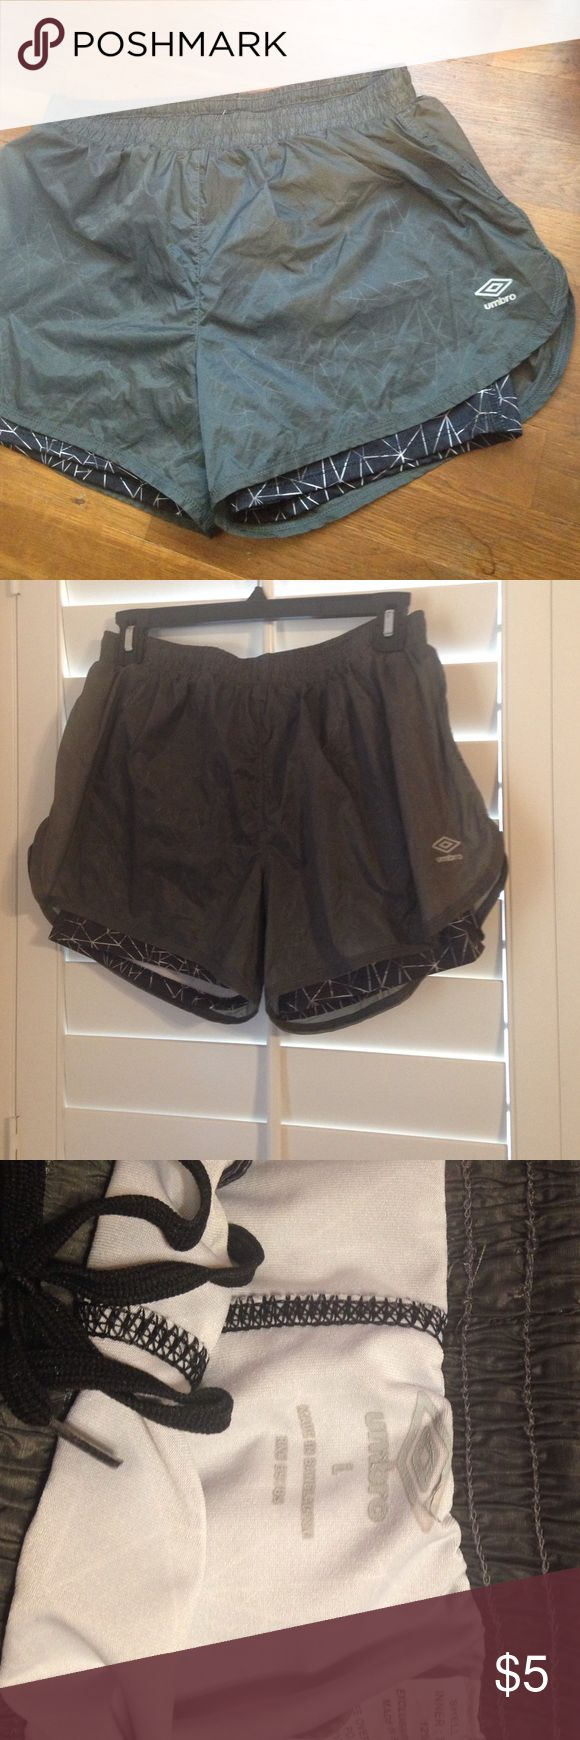 Gray shorts with built in spanx Lightweight. Size L but could fit a M (it has draw strong and stretchy waist). Worn a couple of times, great condition Umbro Shorts